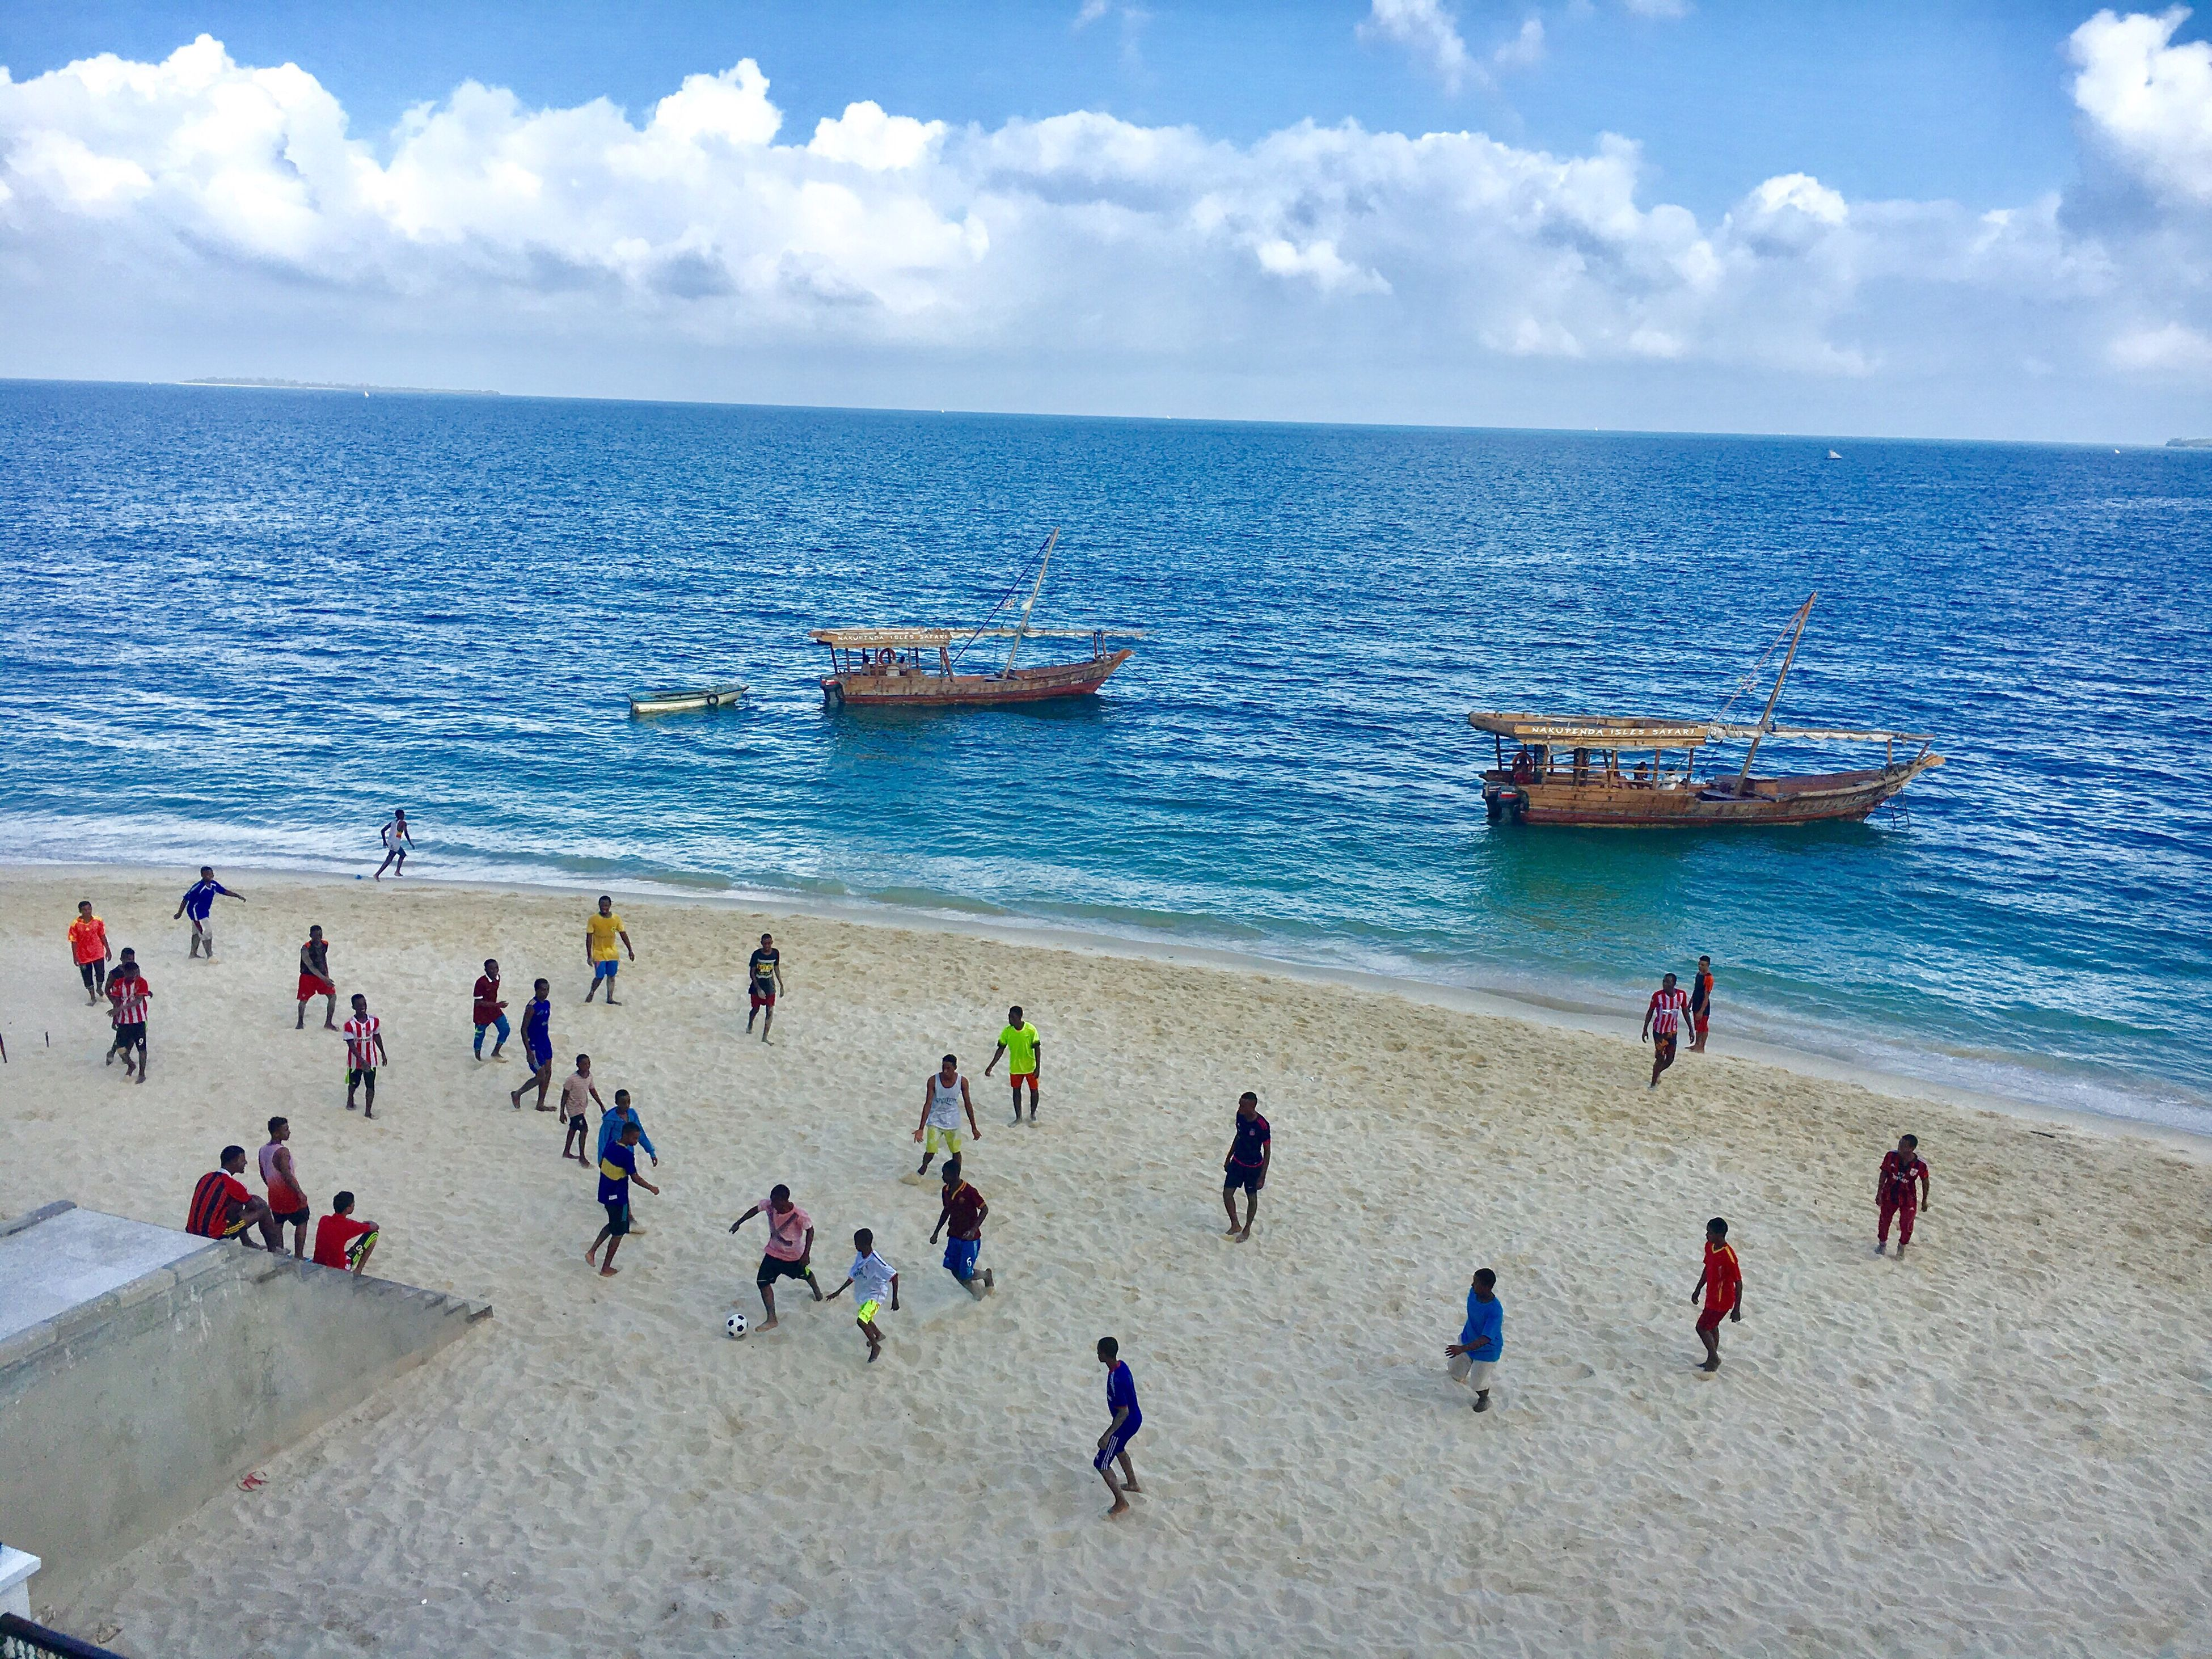 sea, beach, large group of people, sky, real people, water, leisure activity, sand, horizon over water, shore, enjoyment, nature, cloud - sky, outdoors, beauty in nature, vacations, lifestyles, scenics, day, women, nautical vessel, men, people, adult